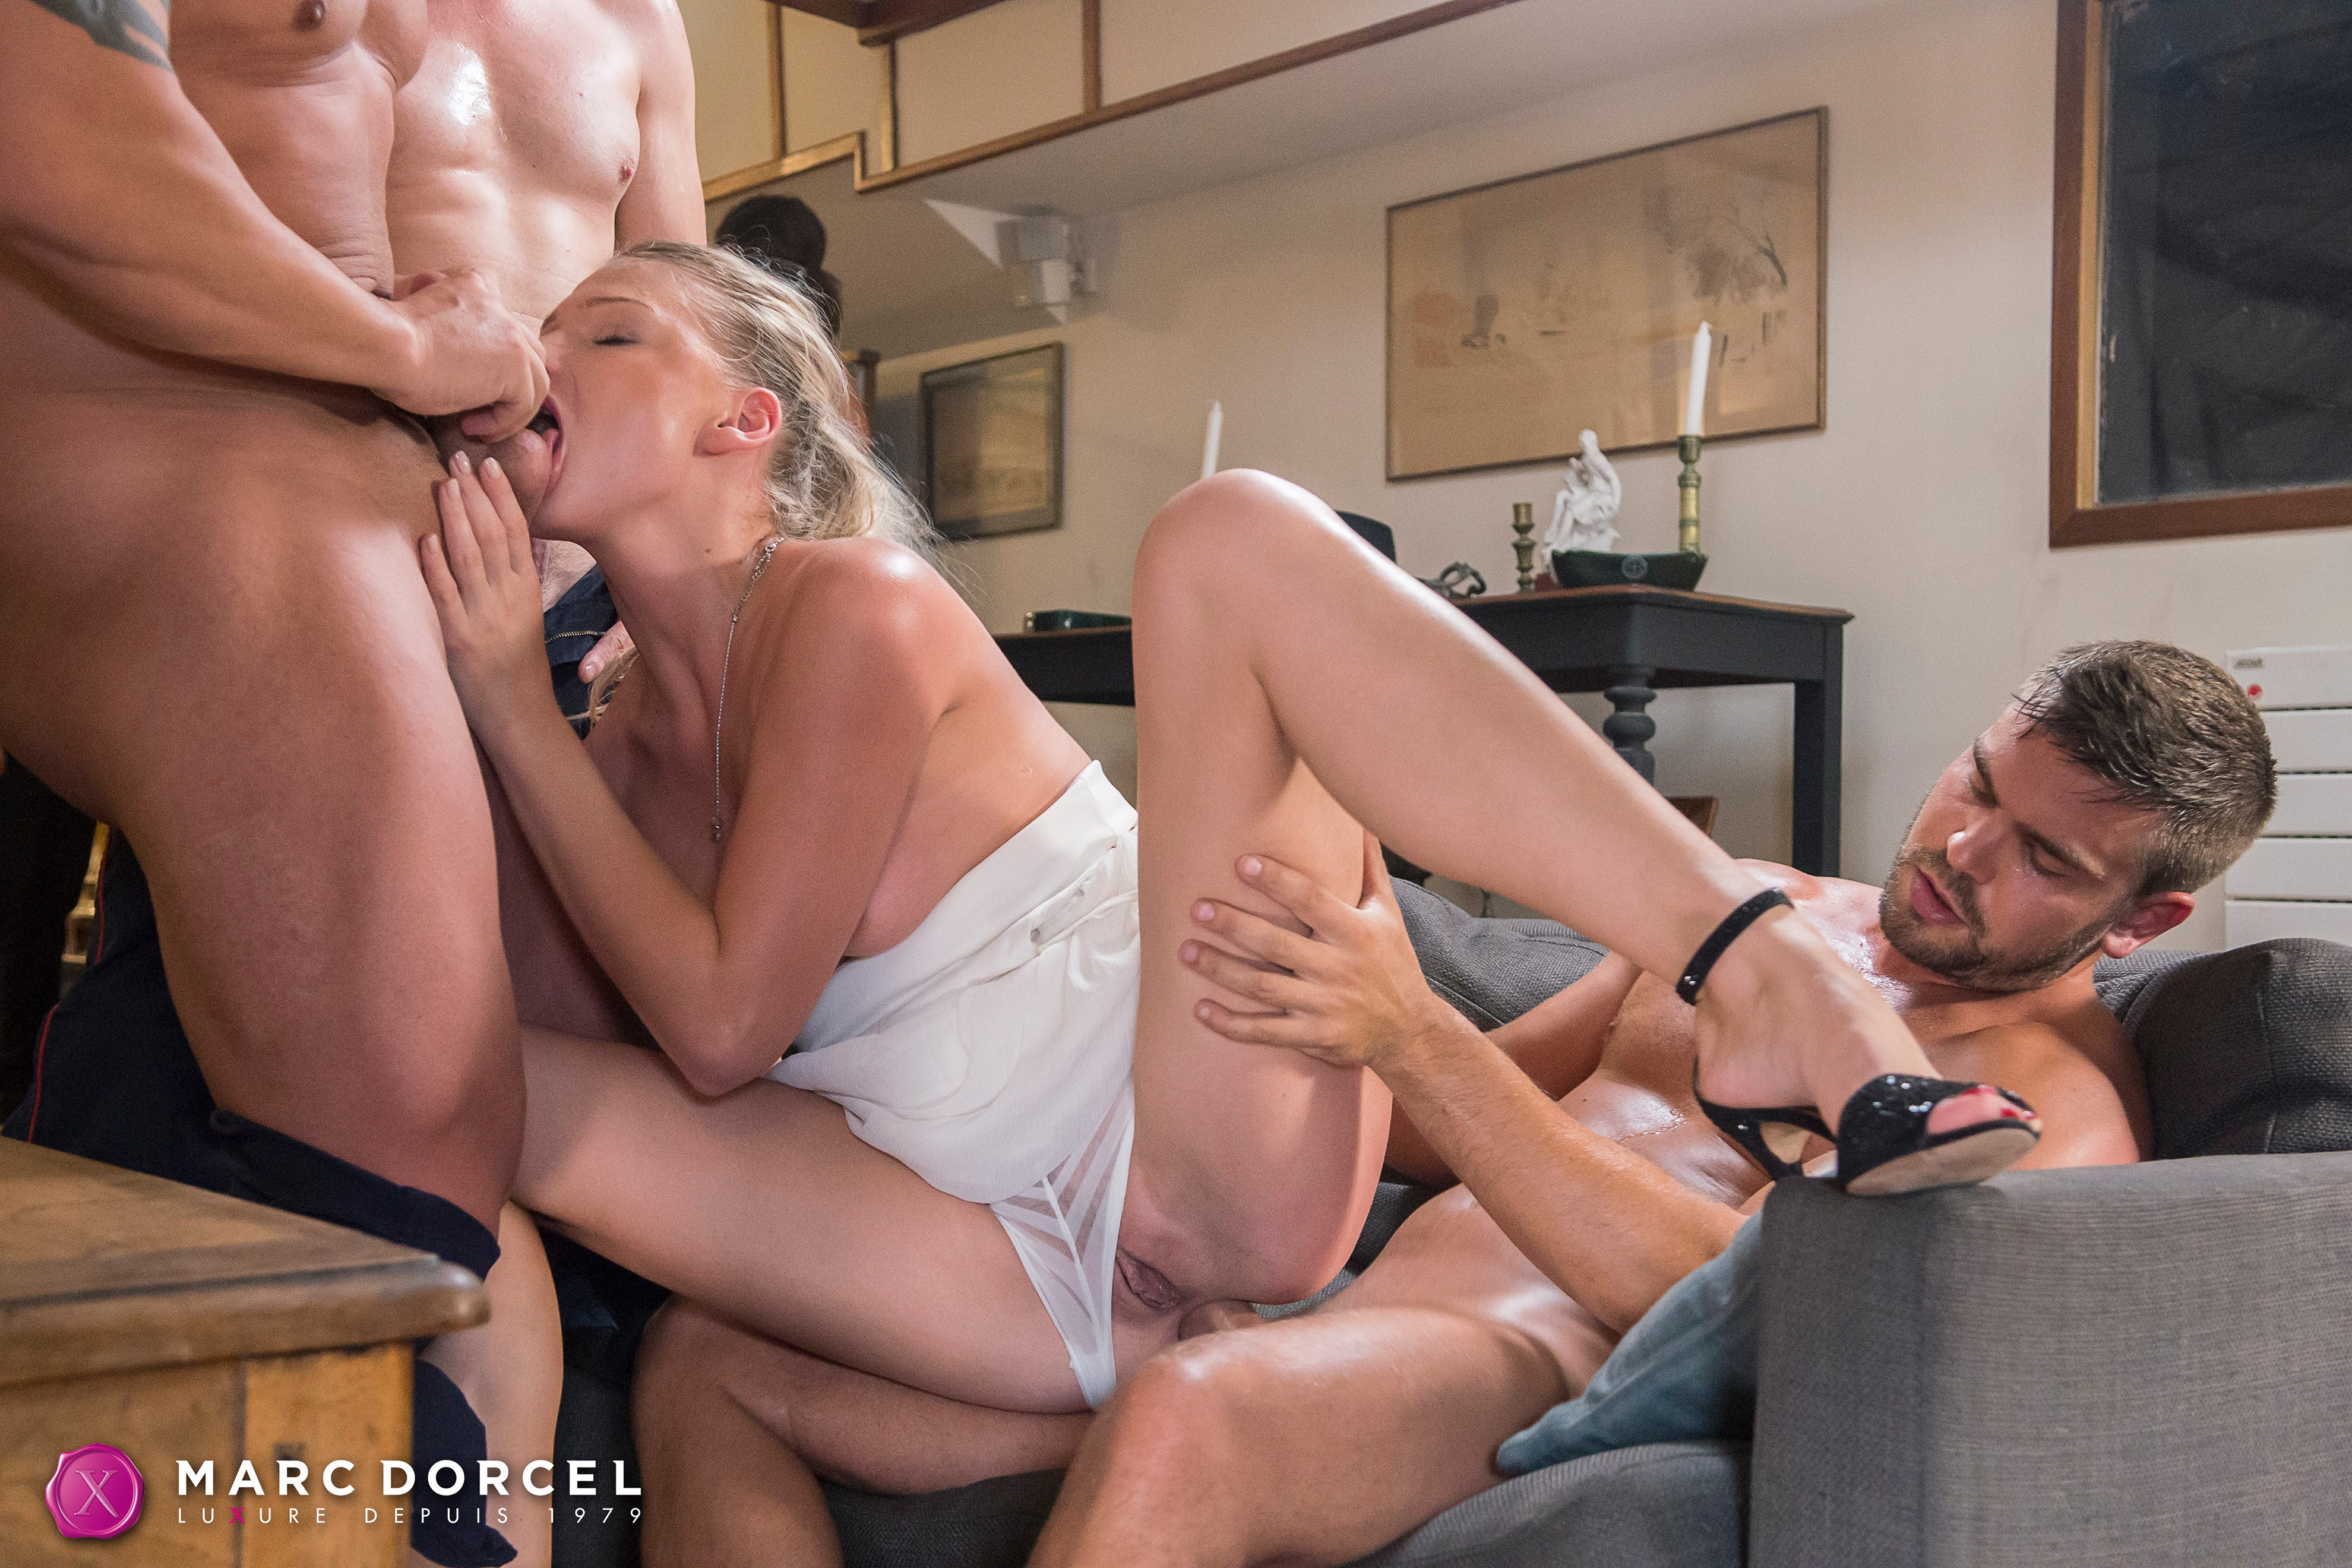 Vixen she fucked her dads friend 9